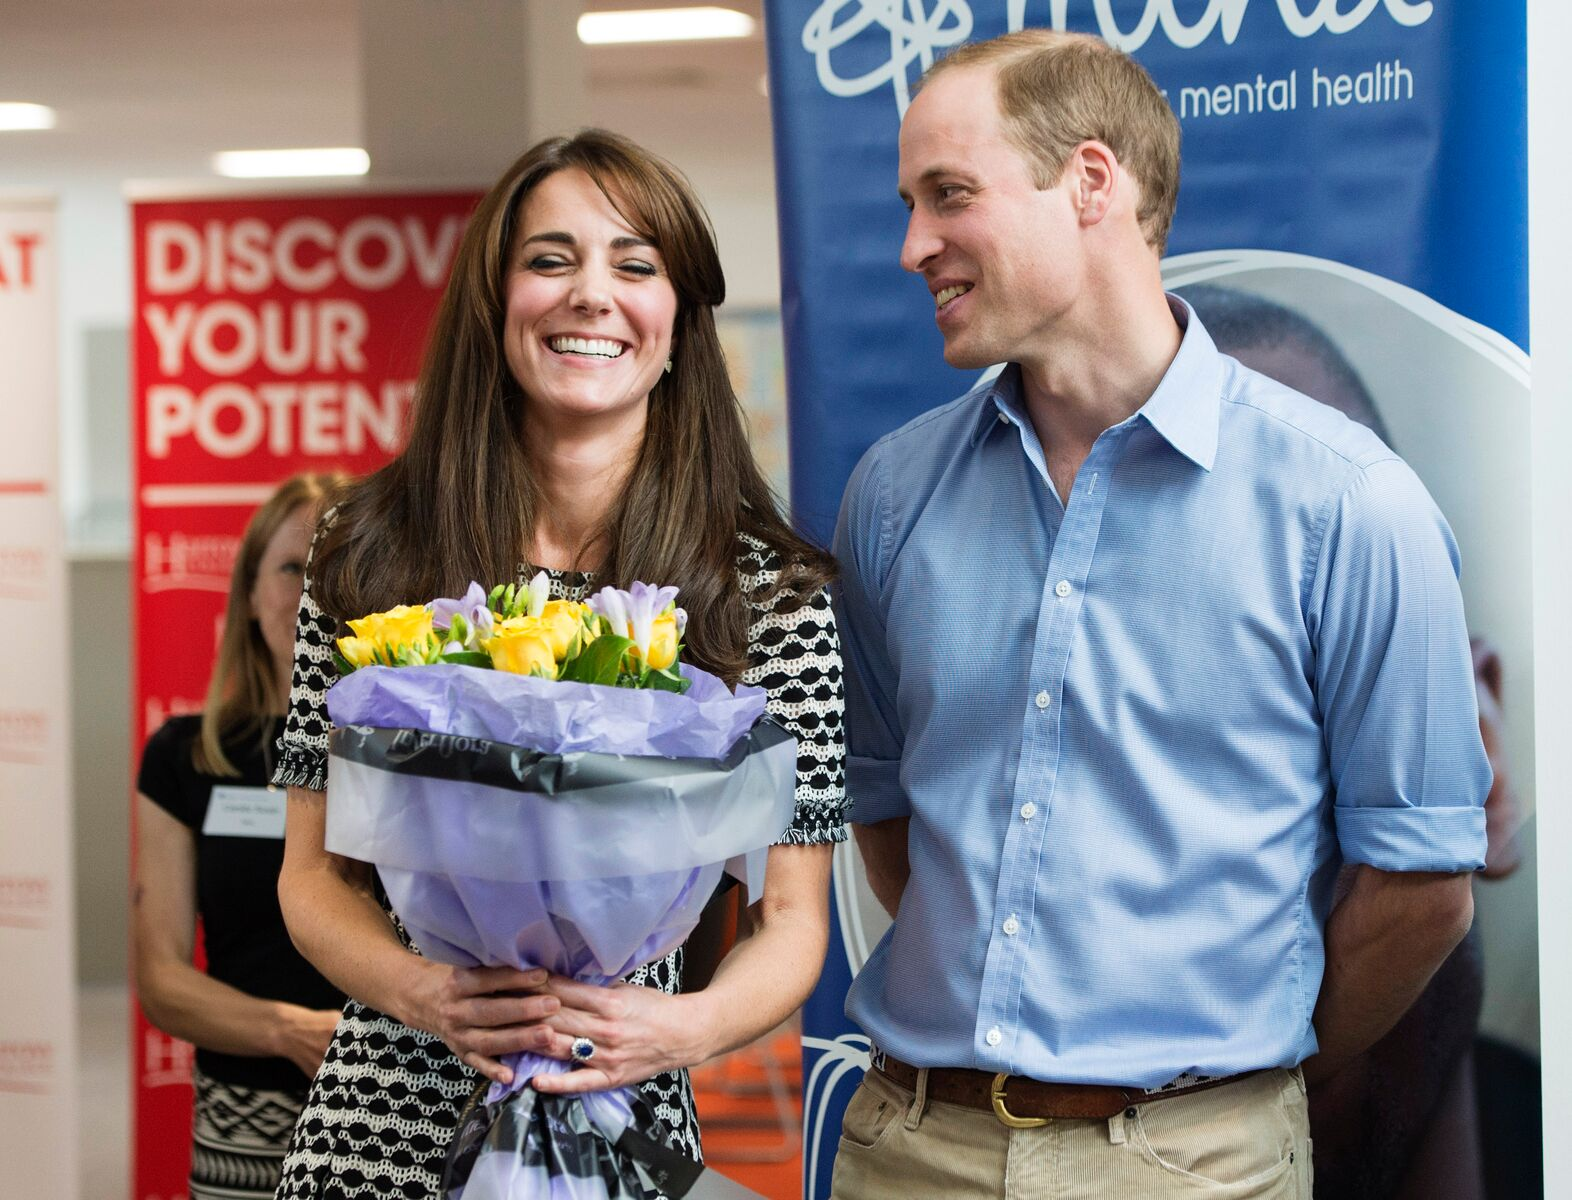 Prince William and Kate Middleton attend an event hosted by Mind to mark World Mental Health Day in 2015. | Source: Getty Images